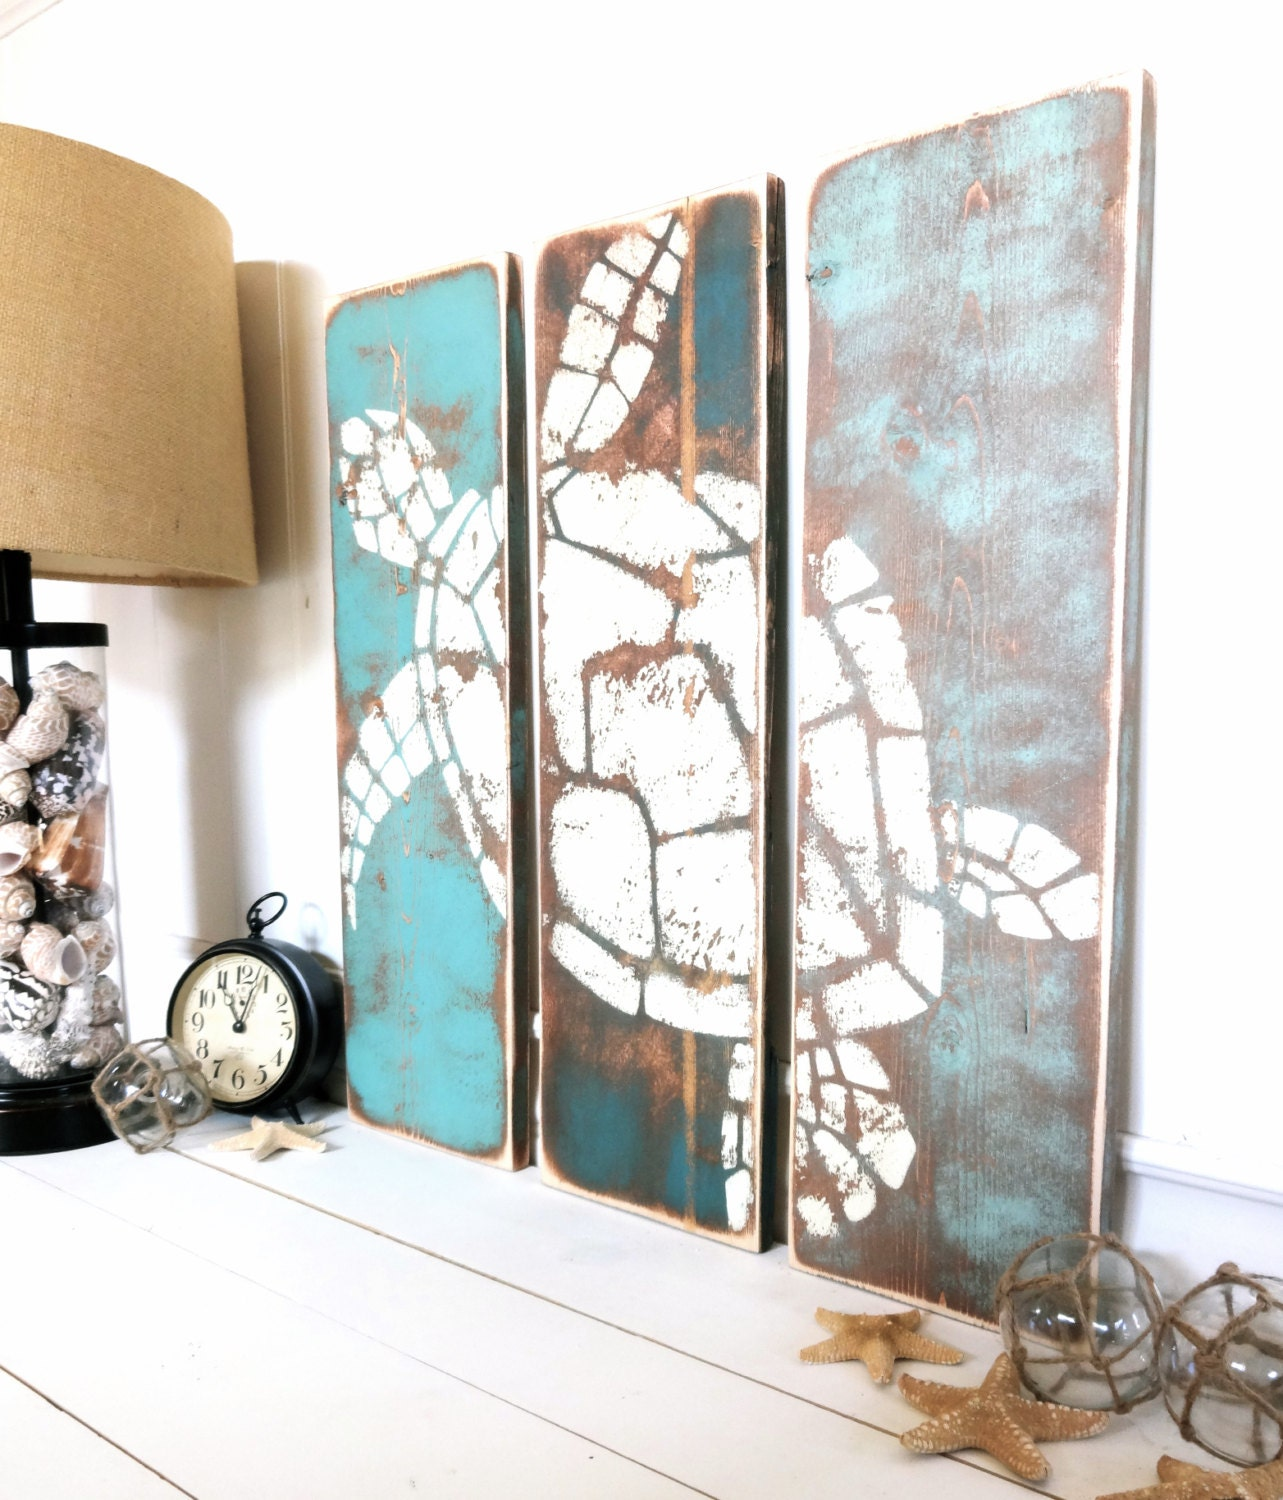 Meet me bye the sea vintage honu for Vintage ocean decor